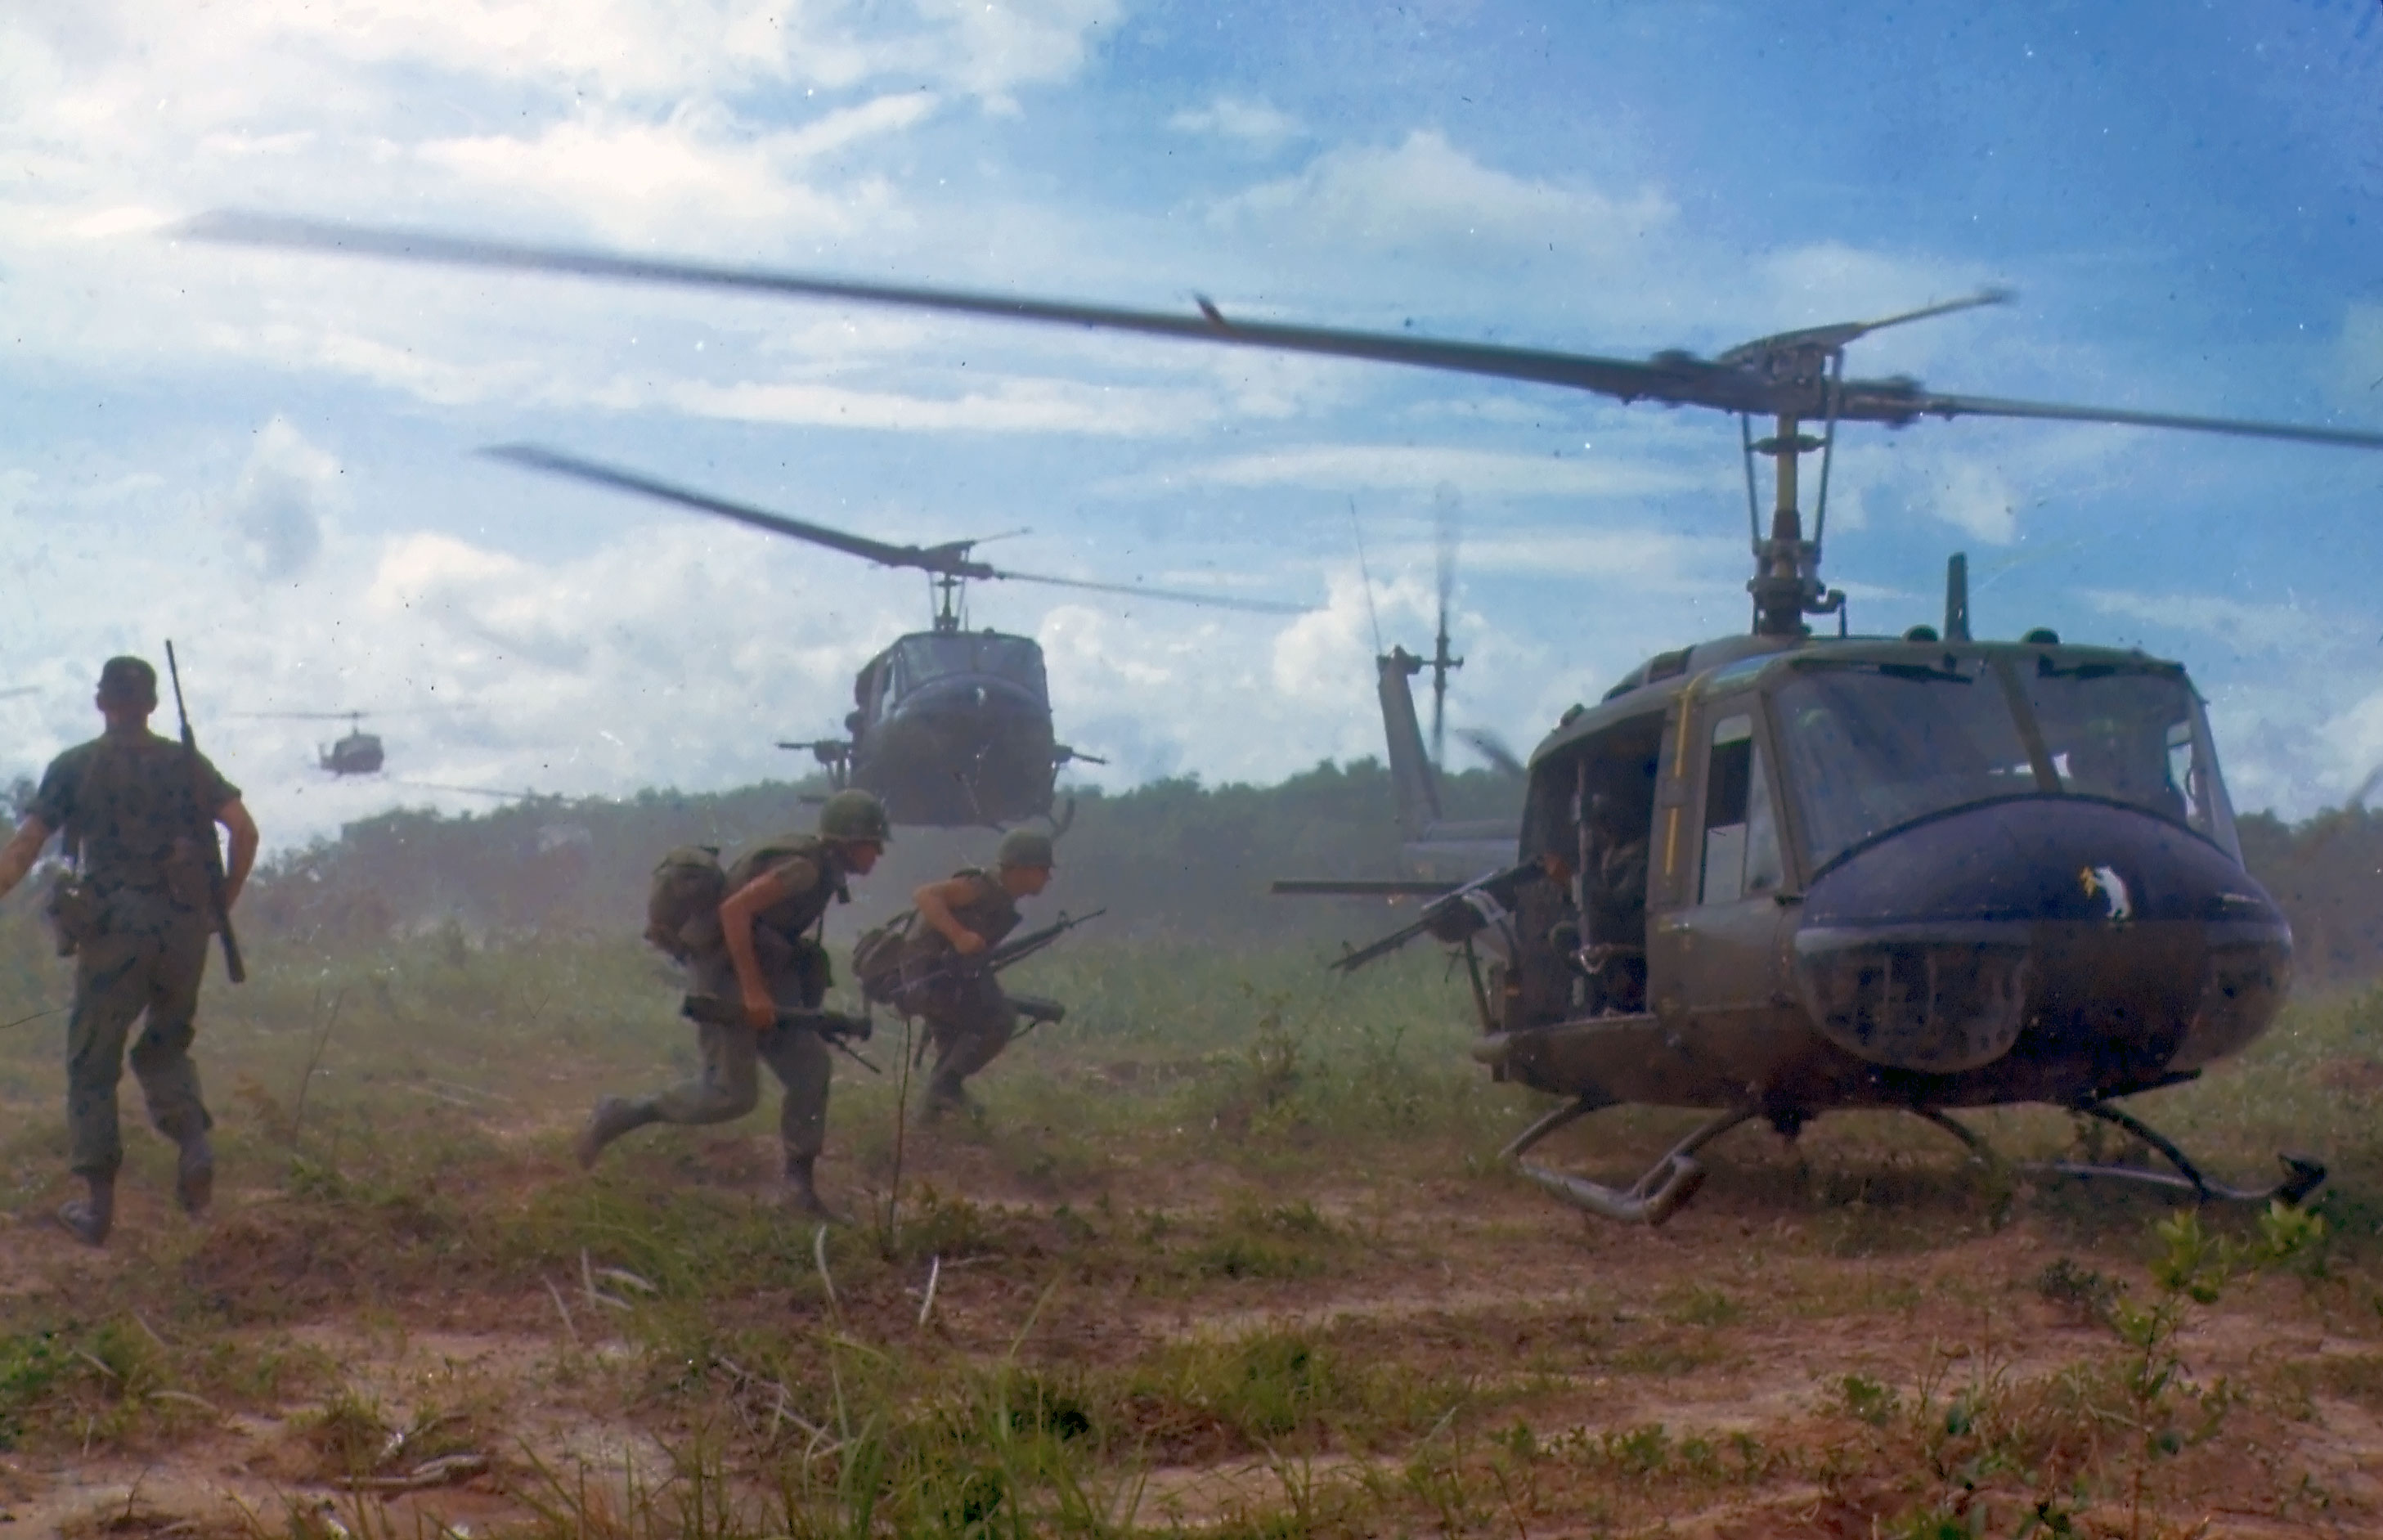 https://upload.wikimedia.org/wikipedia/commons/f/fc/UH-1D_helicopters_in_Vietnam_1966.jpg